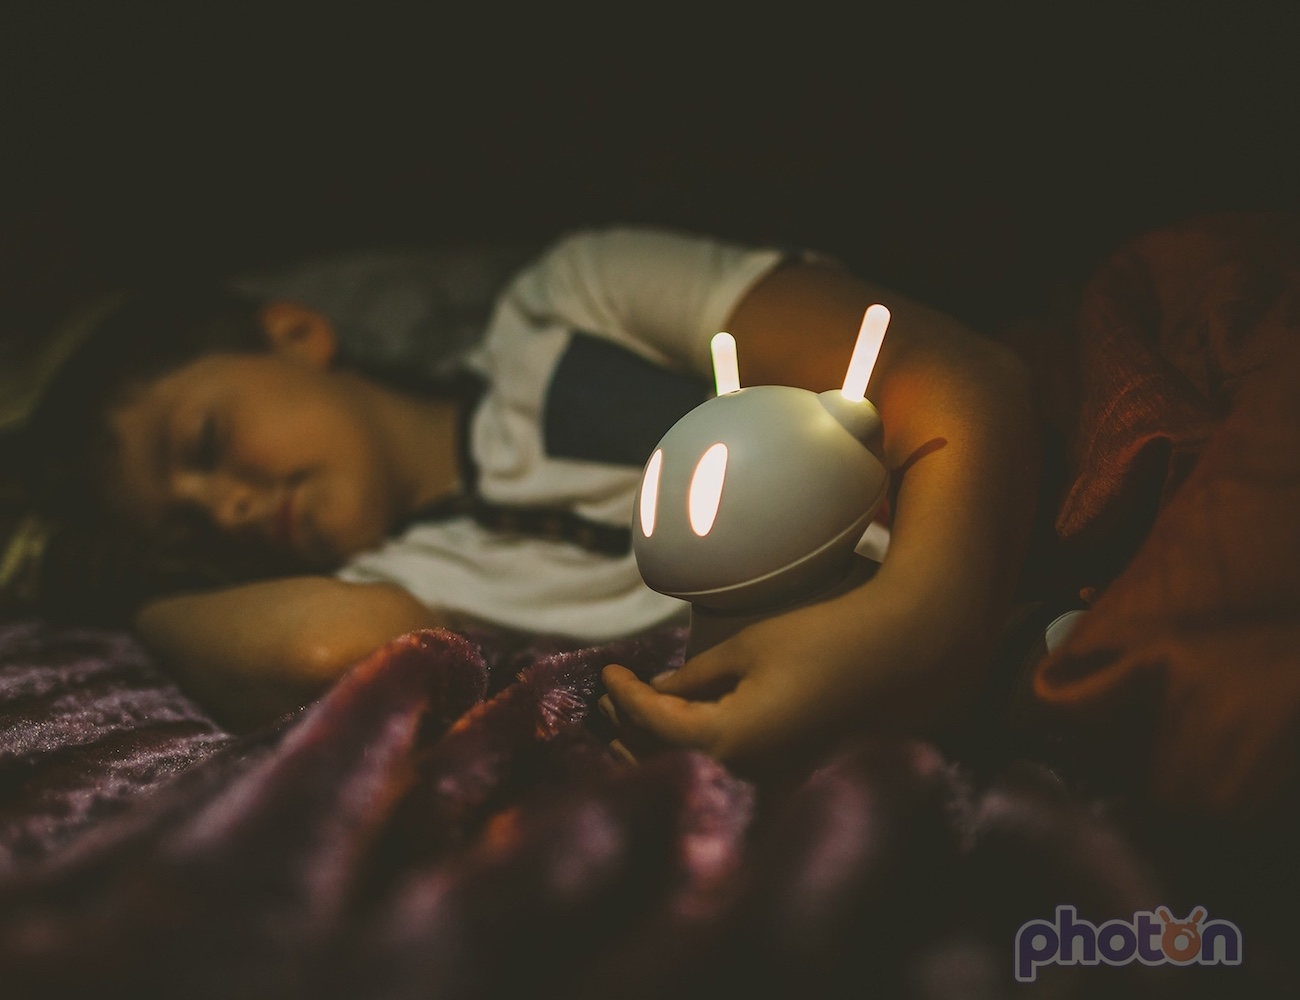 Photon – World's First Robot That Grows With Your Child